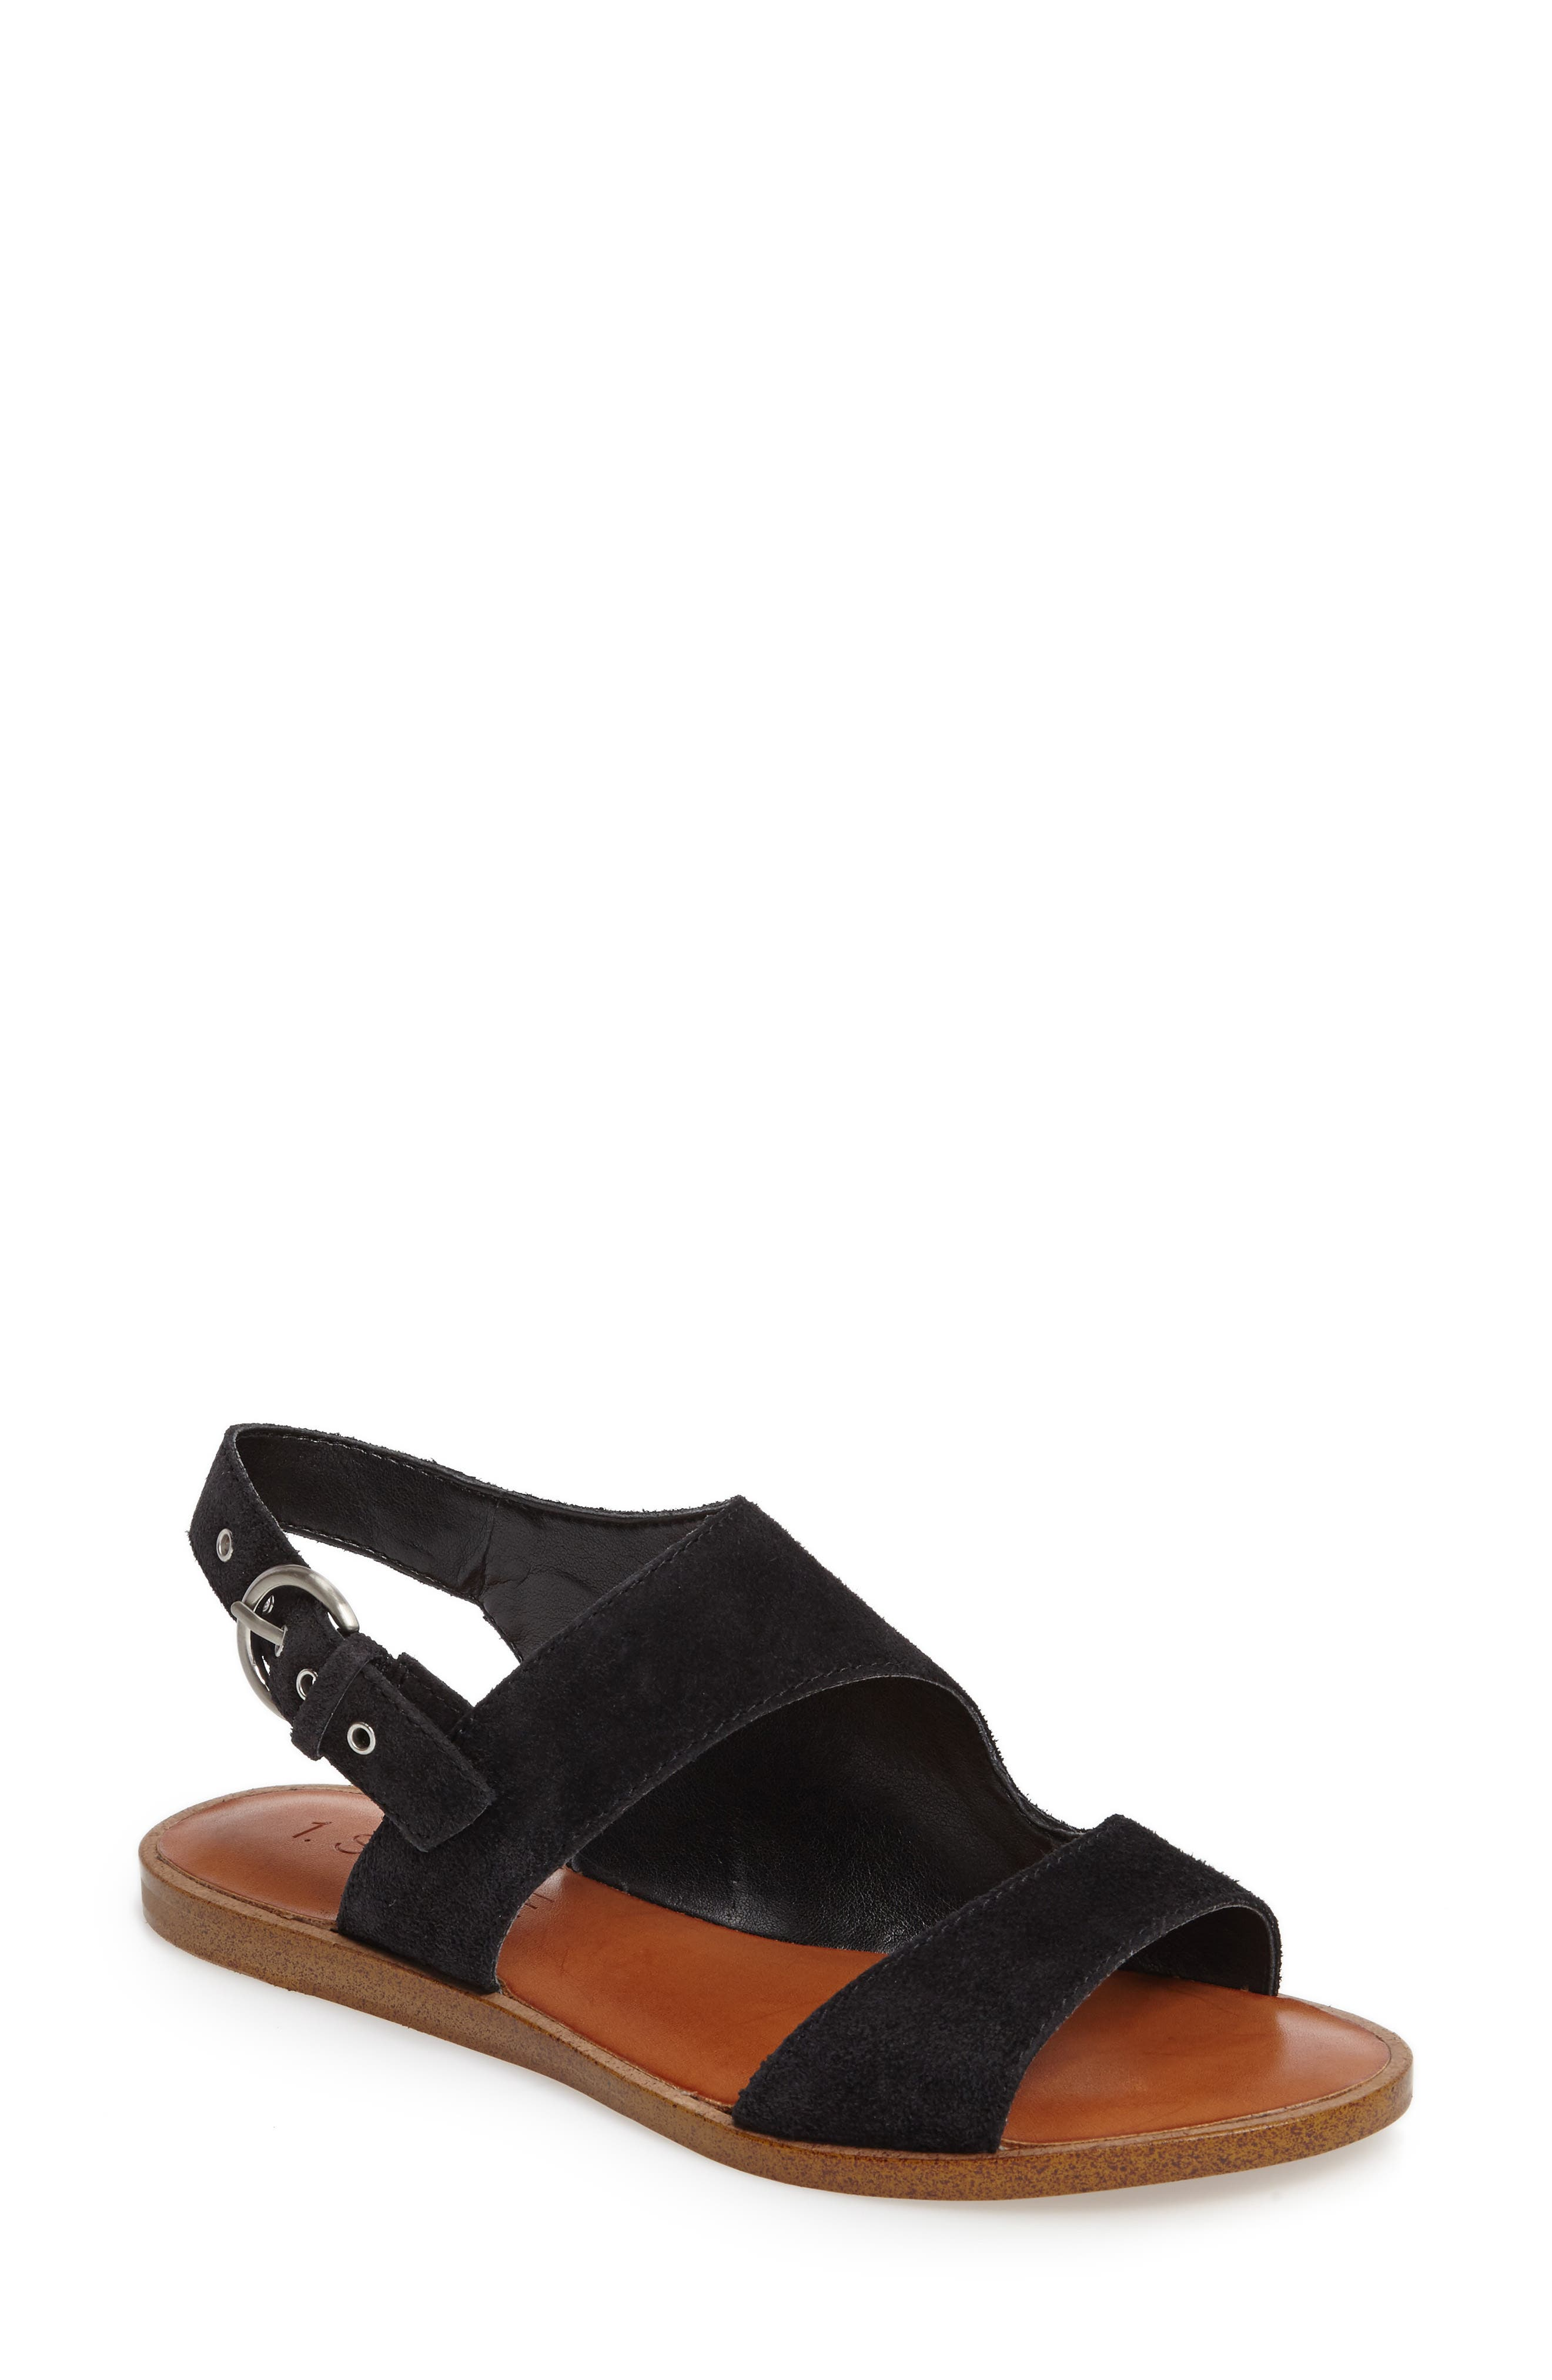 Calen Sandal,                         Main,                         color, 001